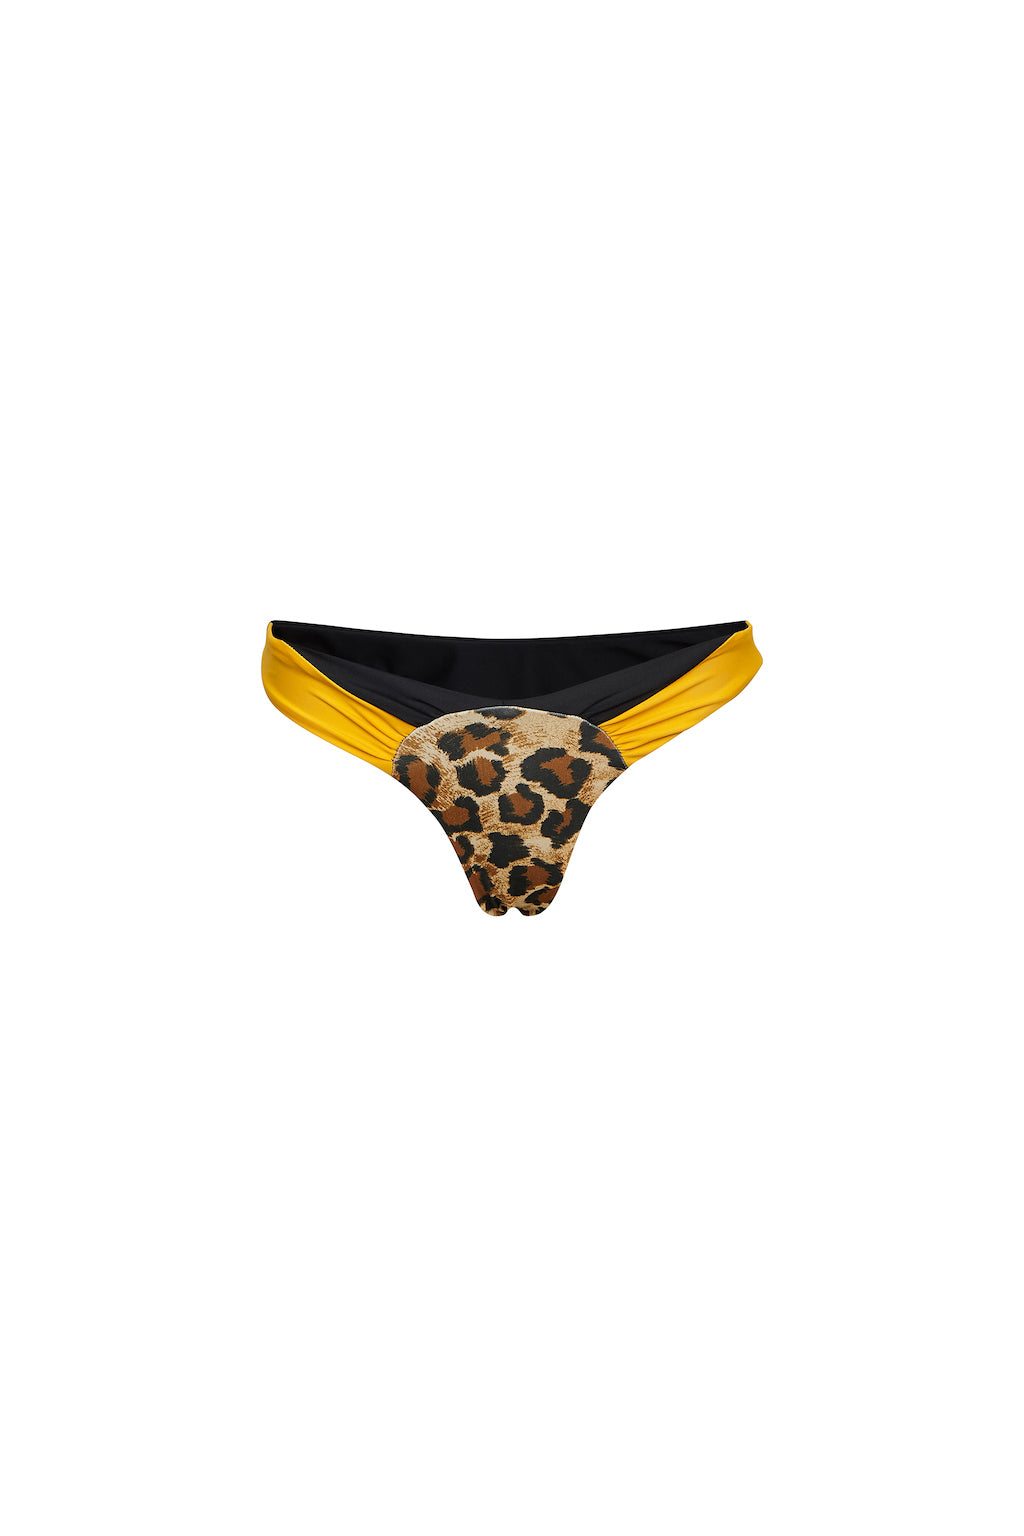 Zuma Bottom (Leopard)